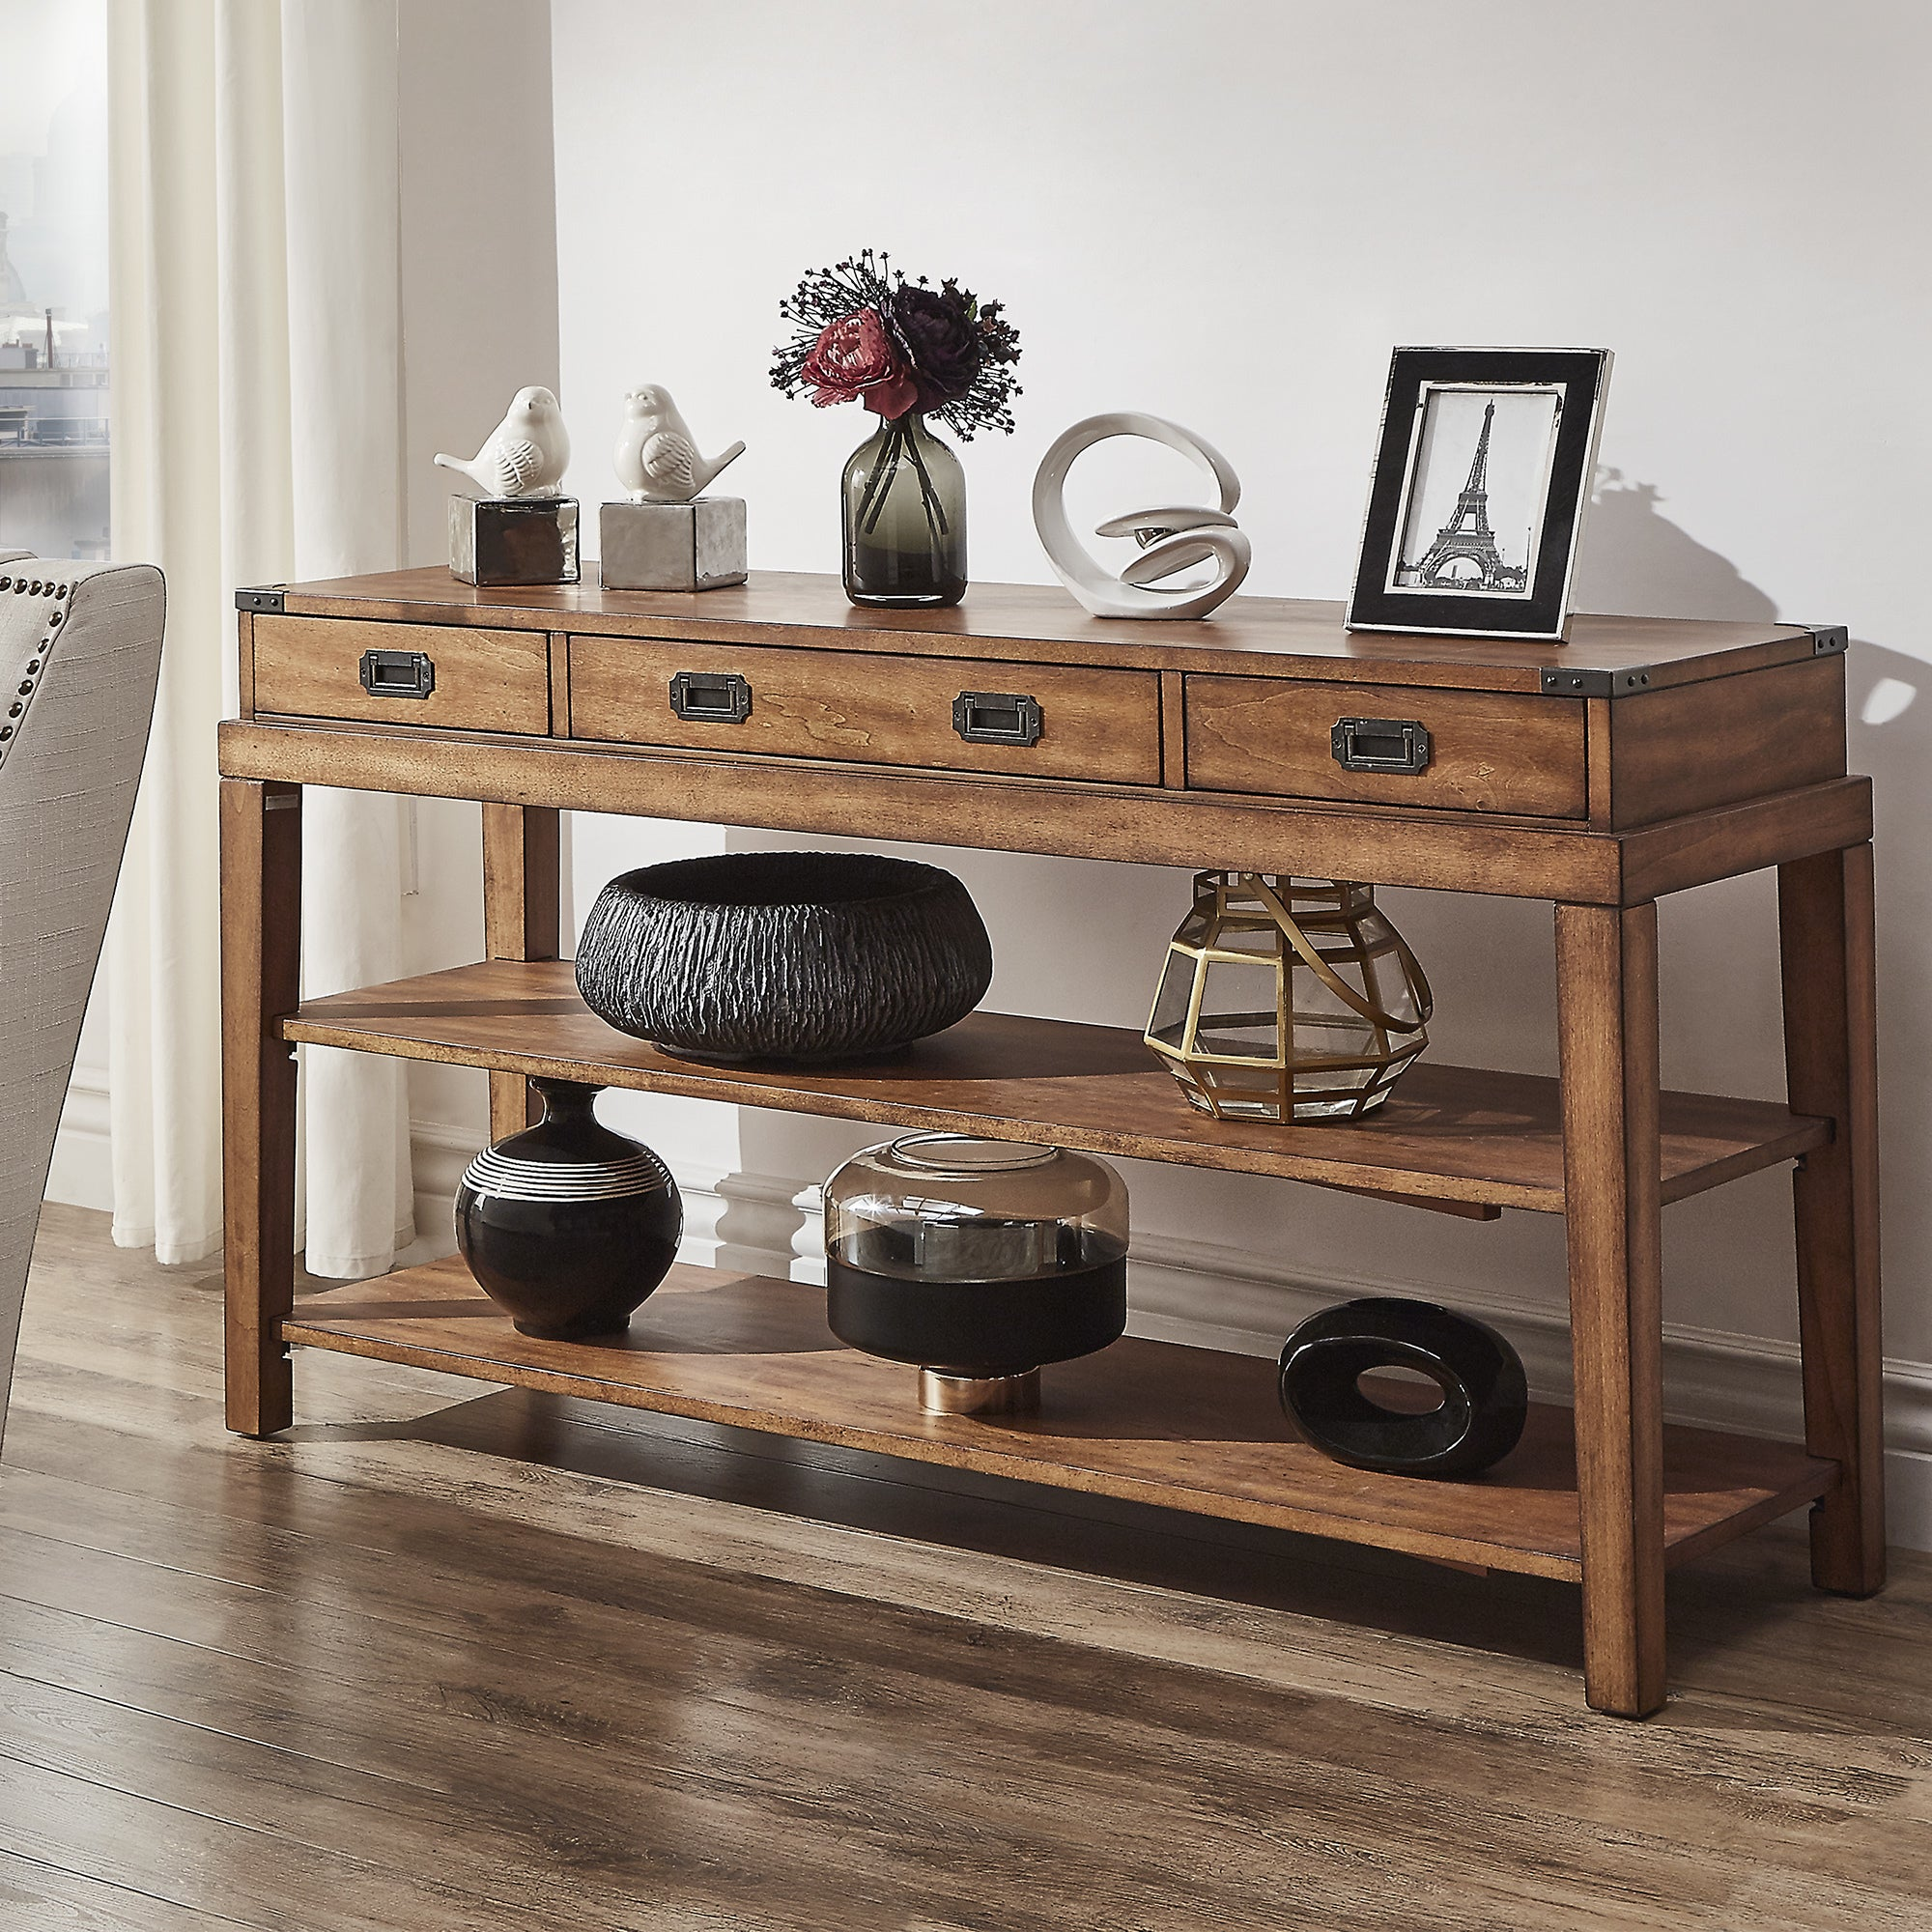 Shop Lonny 3 Drawer Wood Console Table TV Stand By INSPIRE Q Classic   On  Sale   Free Shipping Today   Overstock.com   16820122